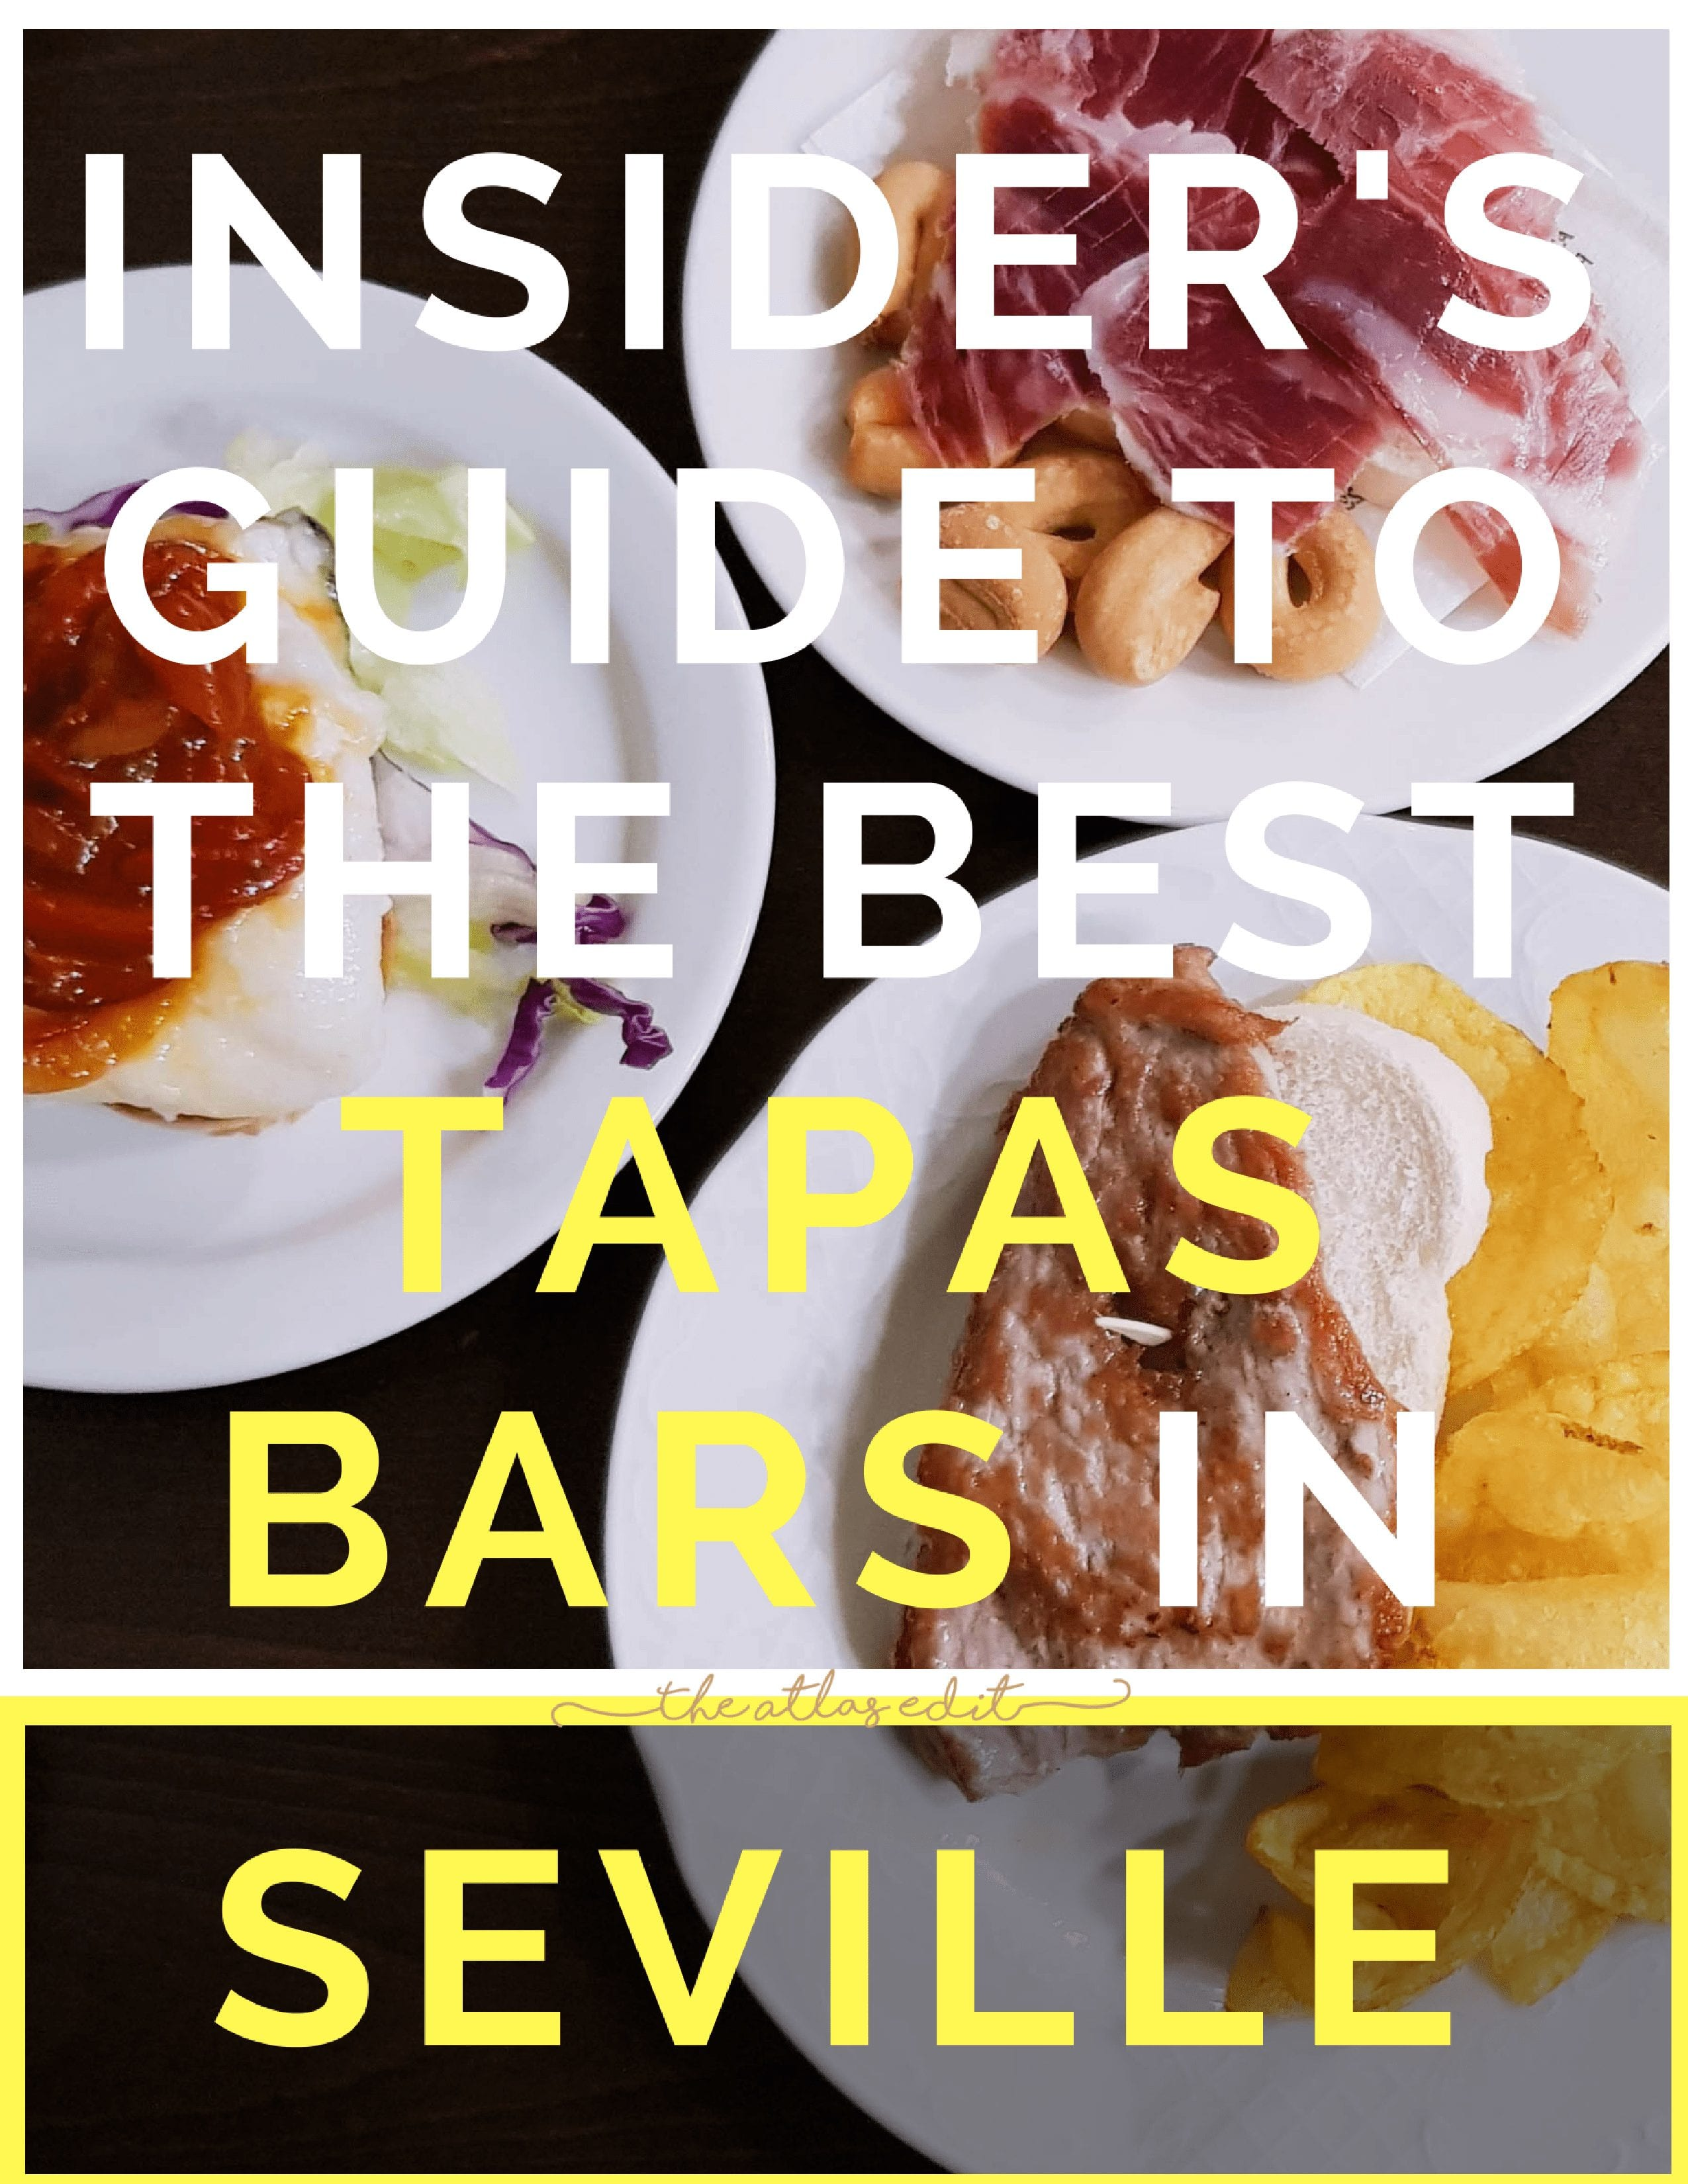 The Best Tapas Bars in Seville